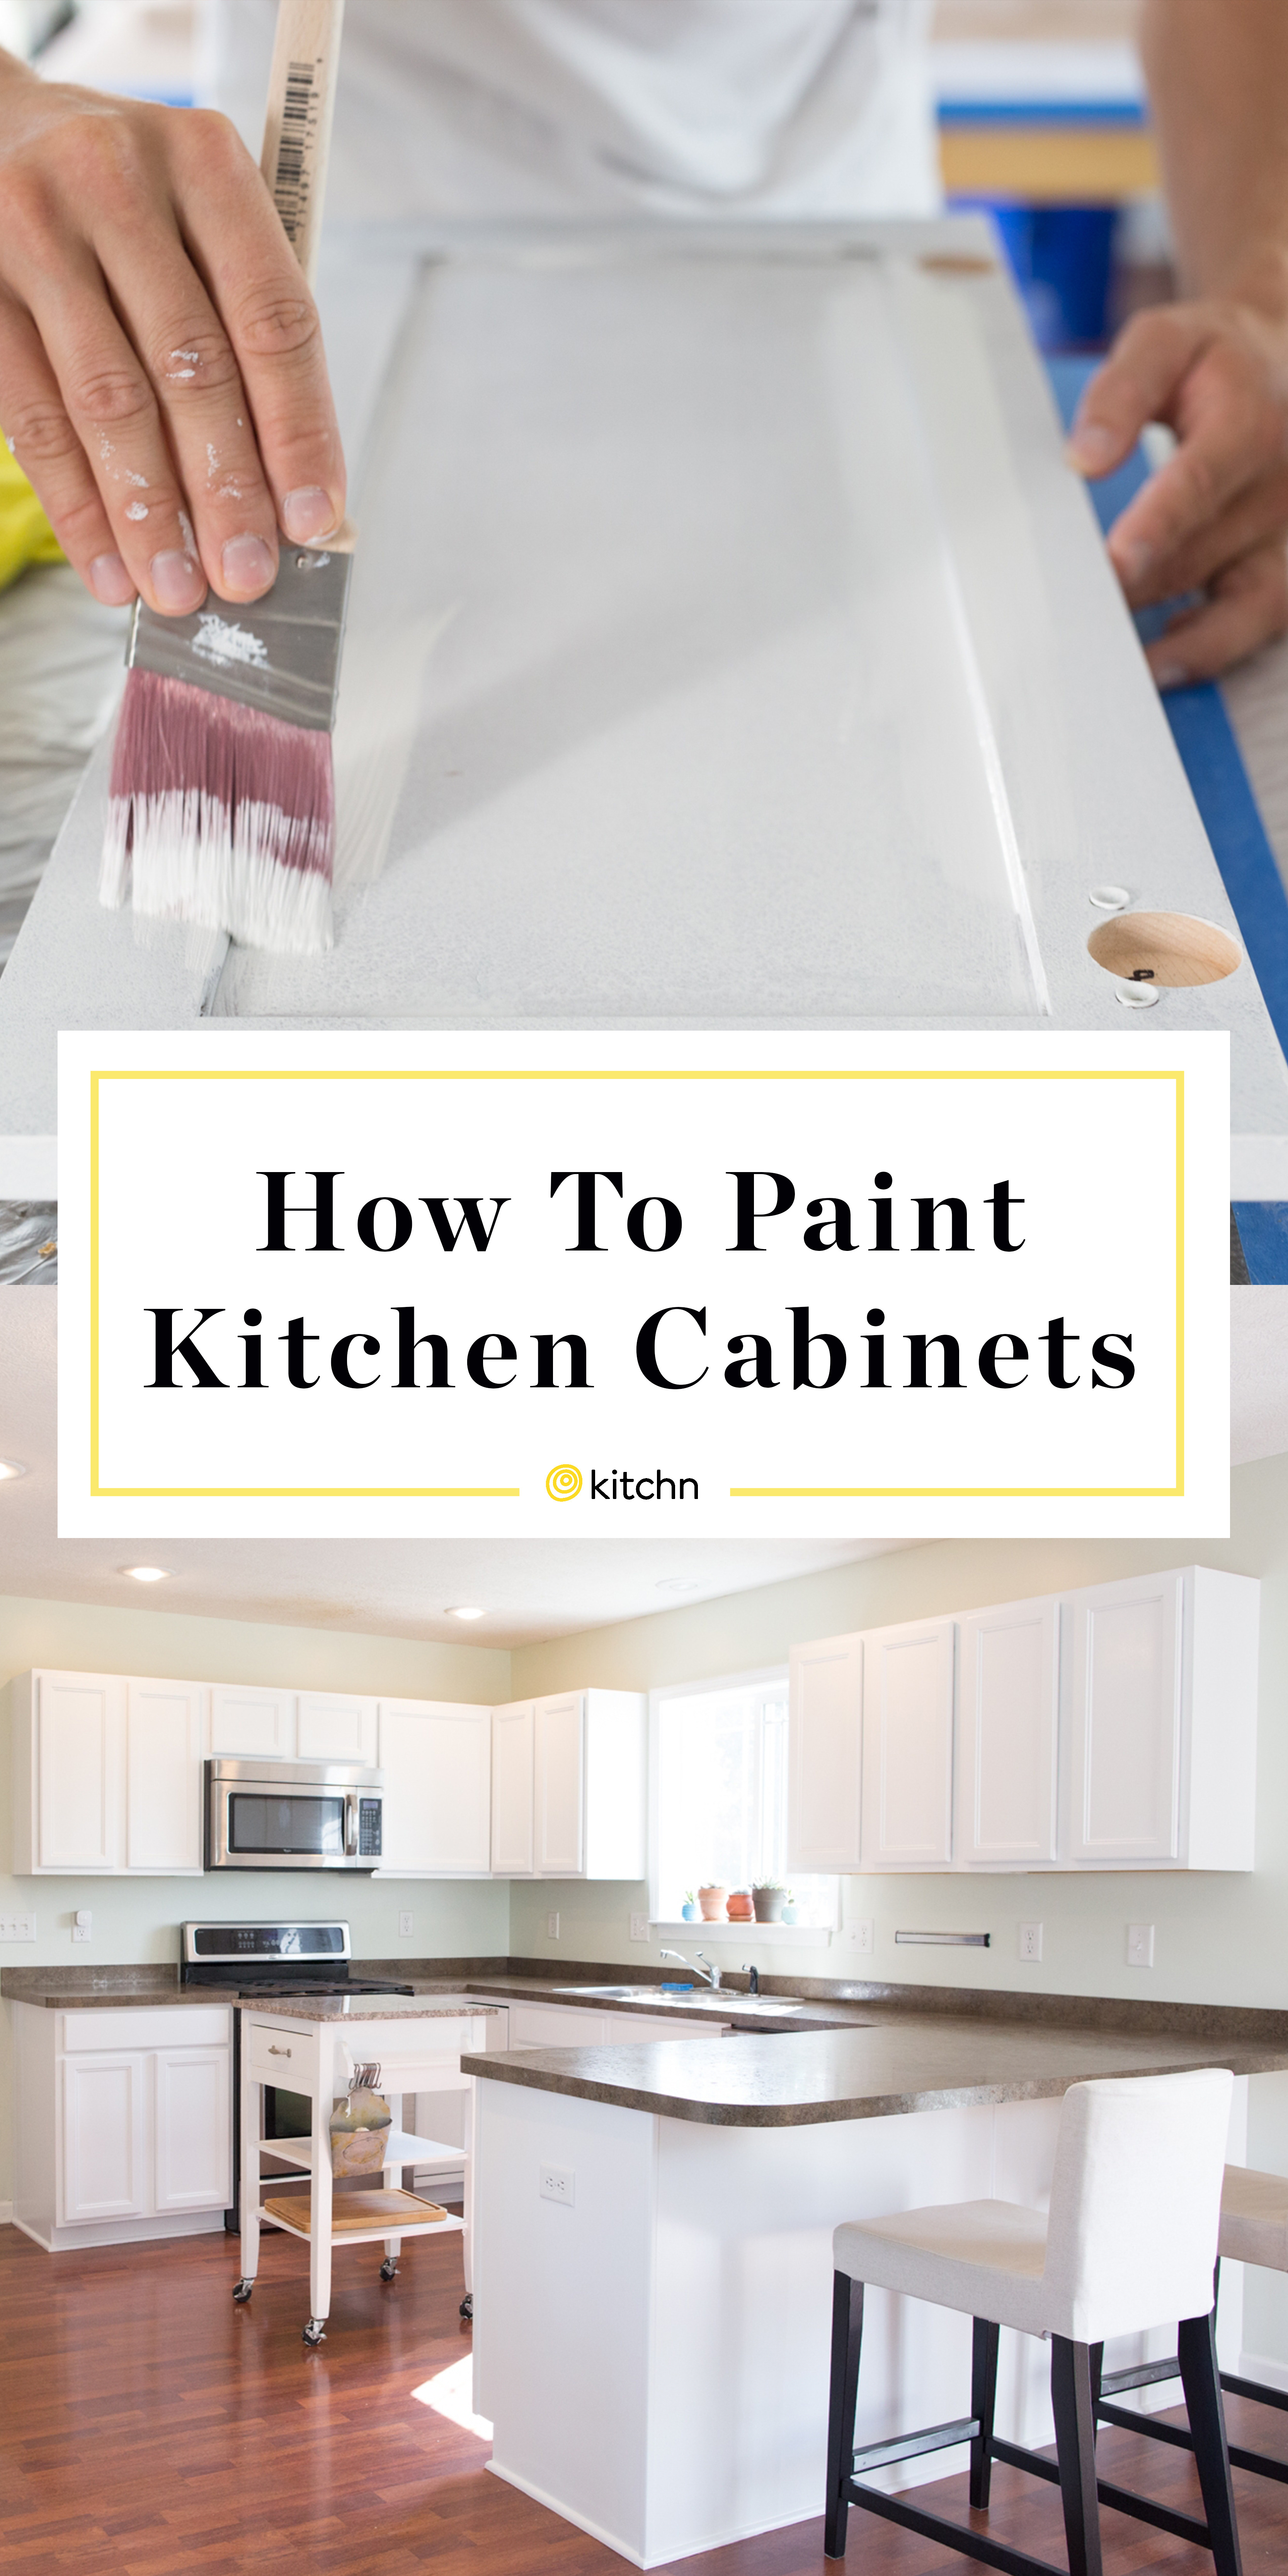 Kitchen Cabinet Door Lock Fresh How to Paint Wood Kitchen Cabinets with White Paint